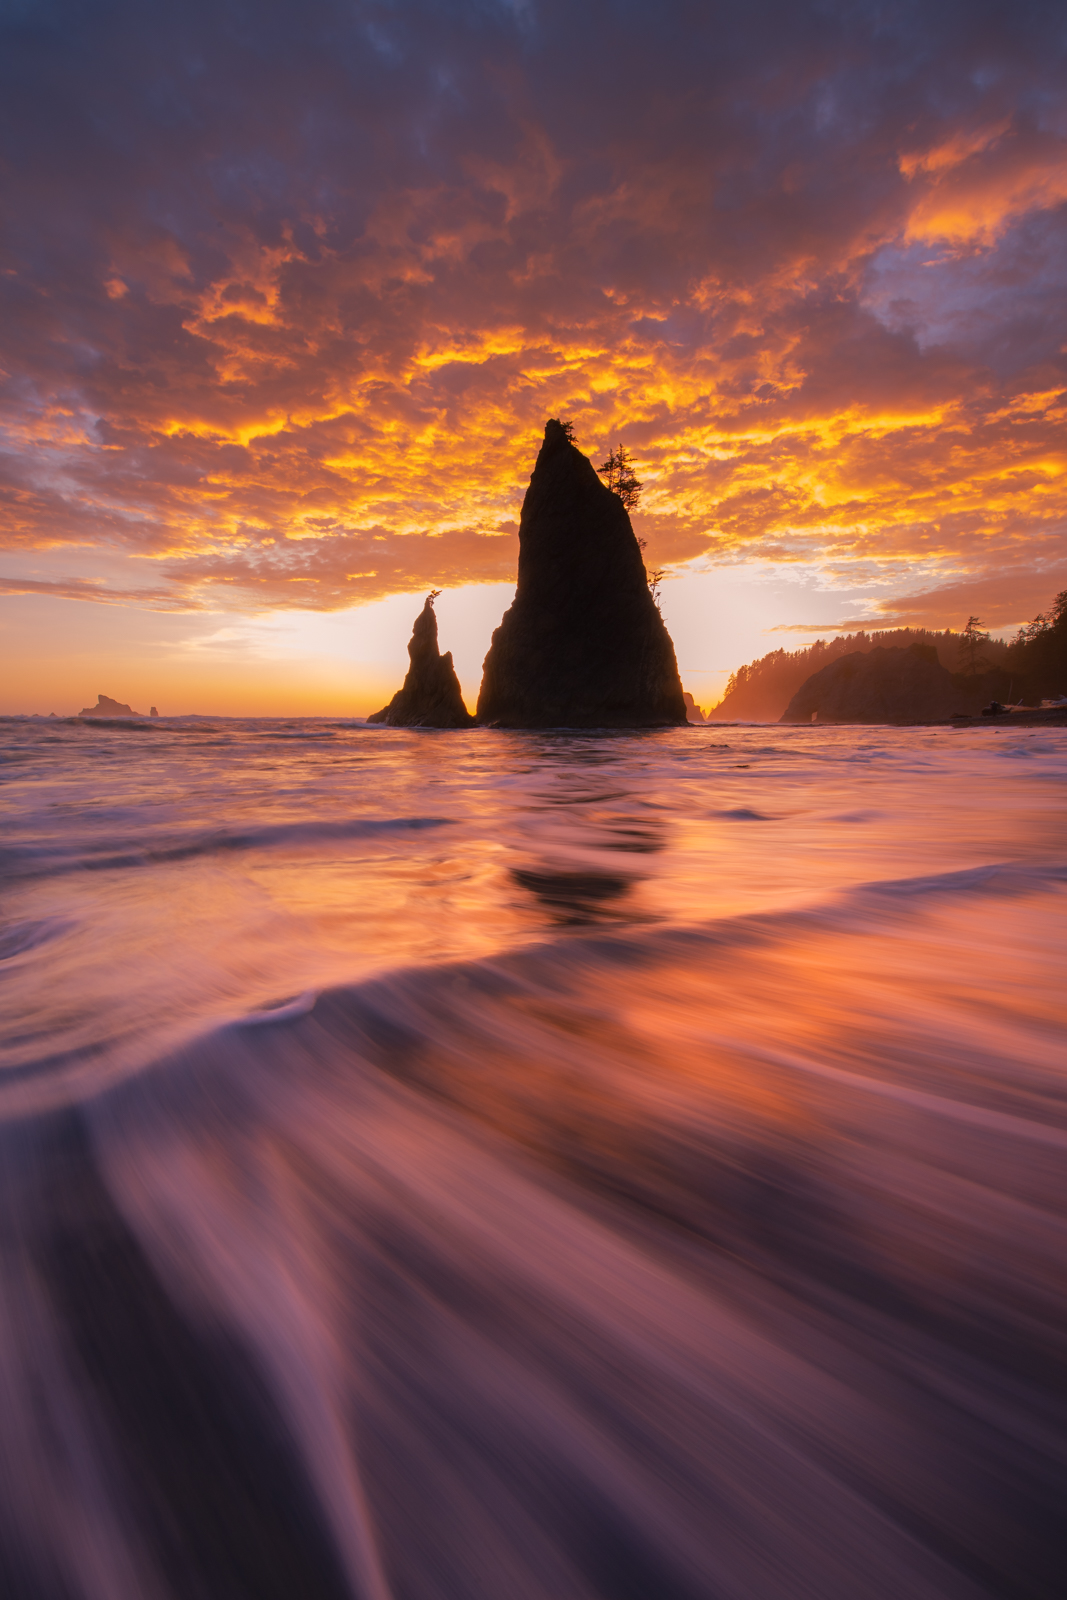 An epic sunset at Rialto Beach on the rugged coast of the Olympic Penninsula.